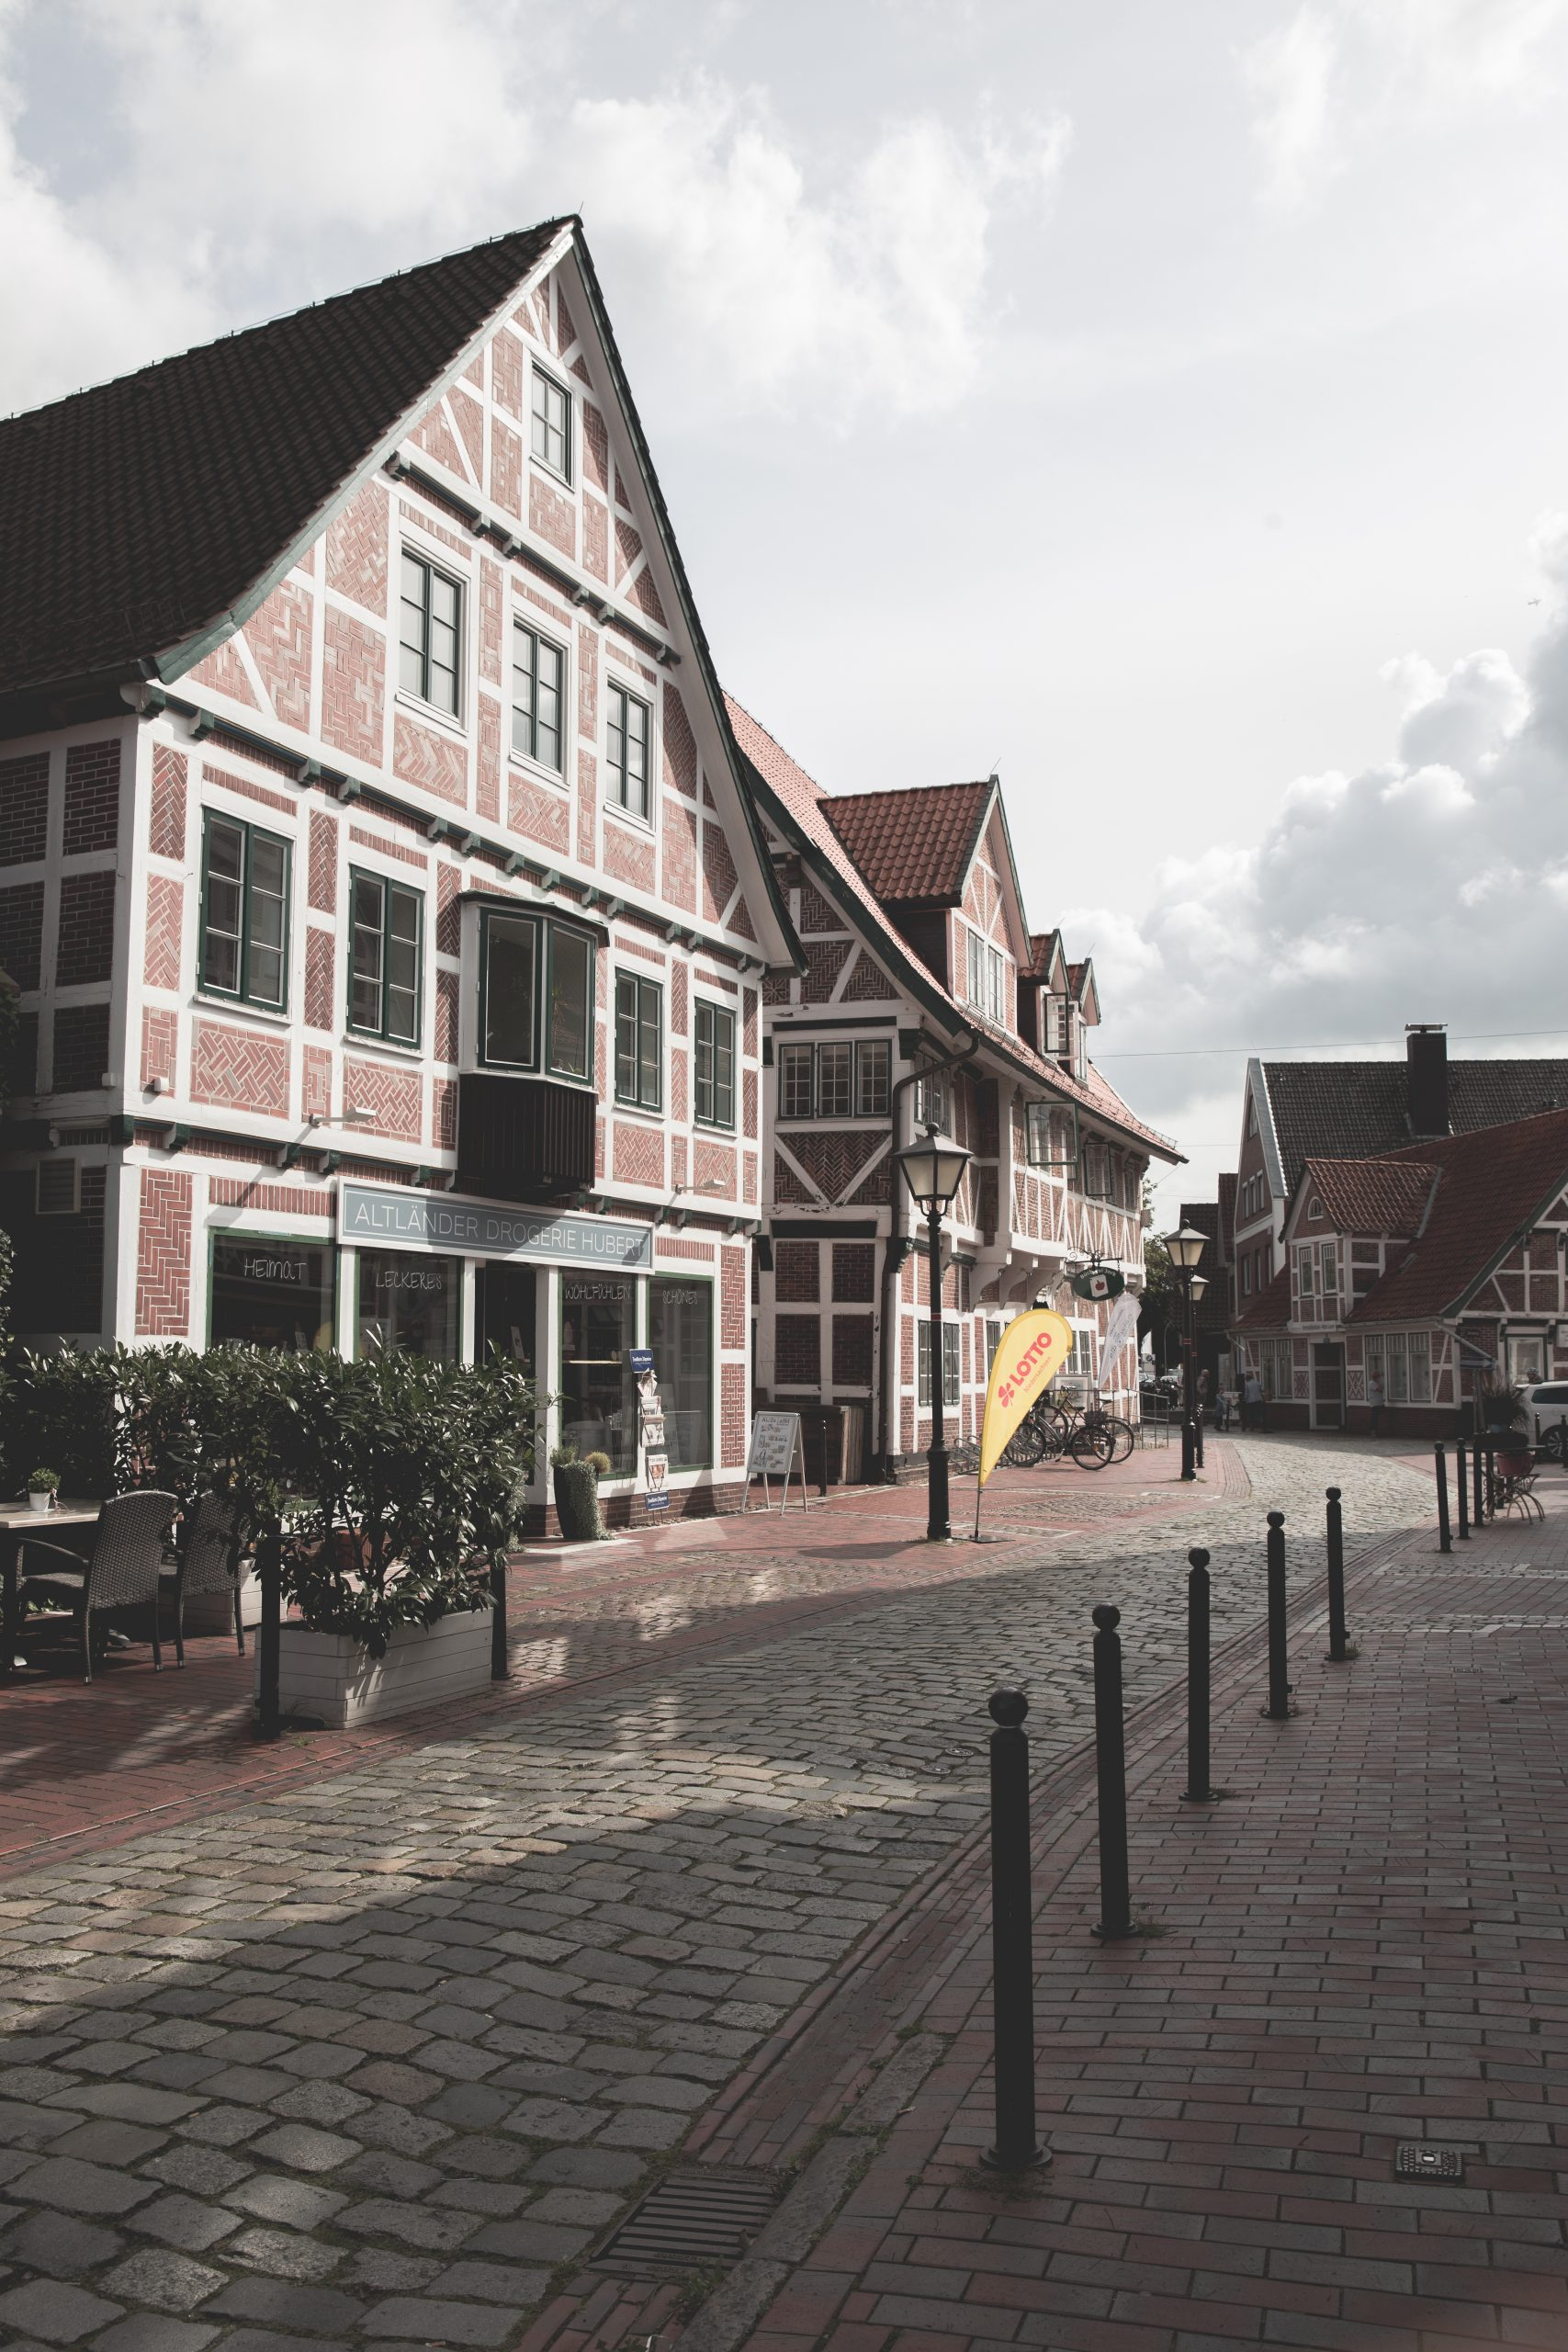 The Main Street in Jork, a town in Altes Land, Germany surrounded by red and white half-timbered houses